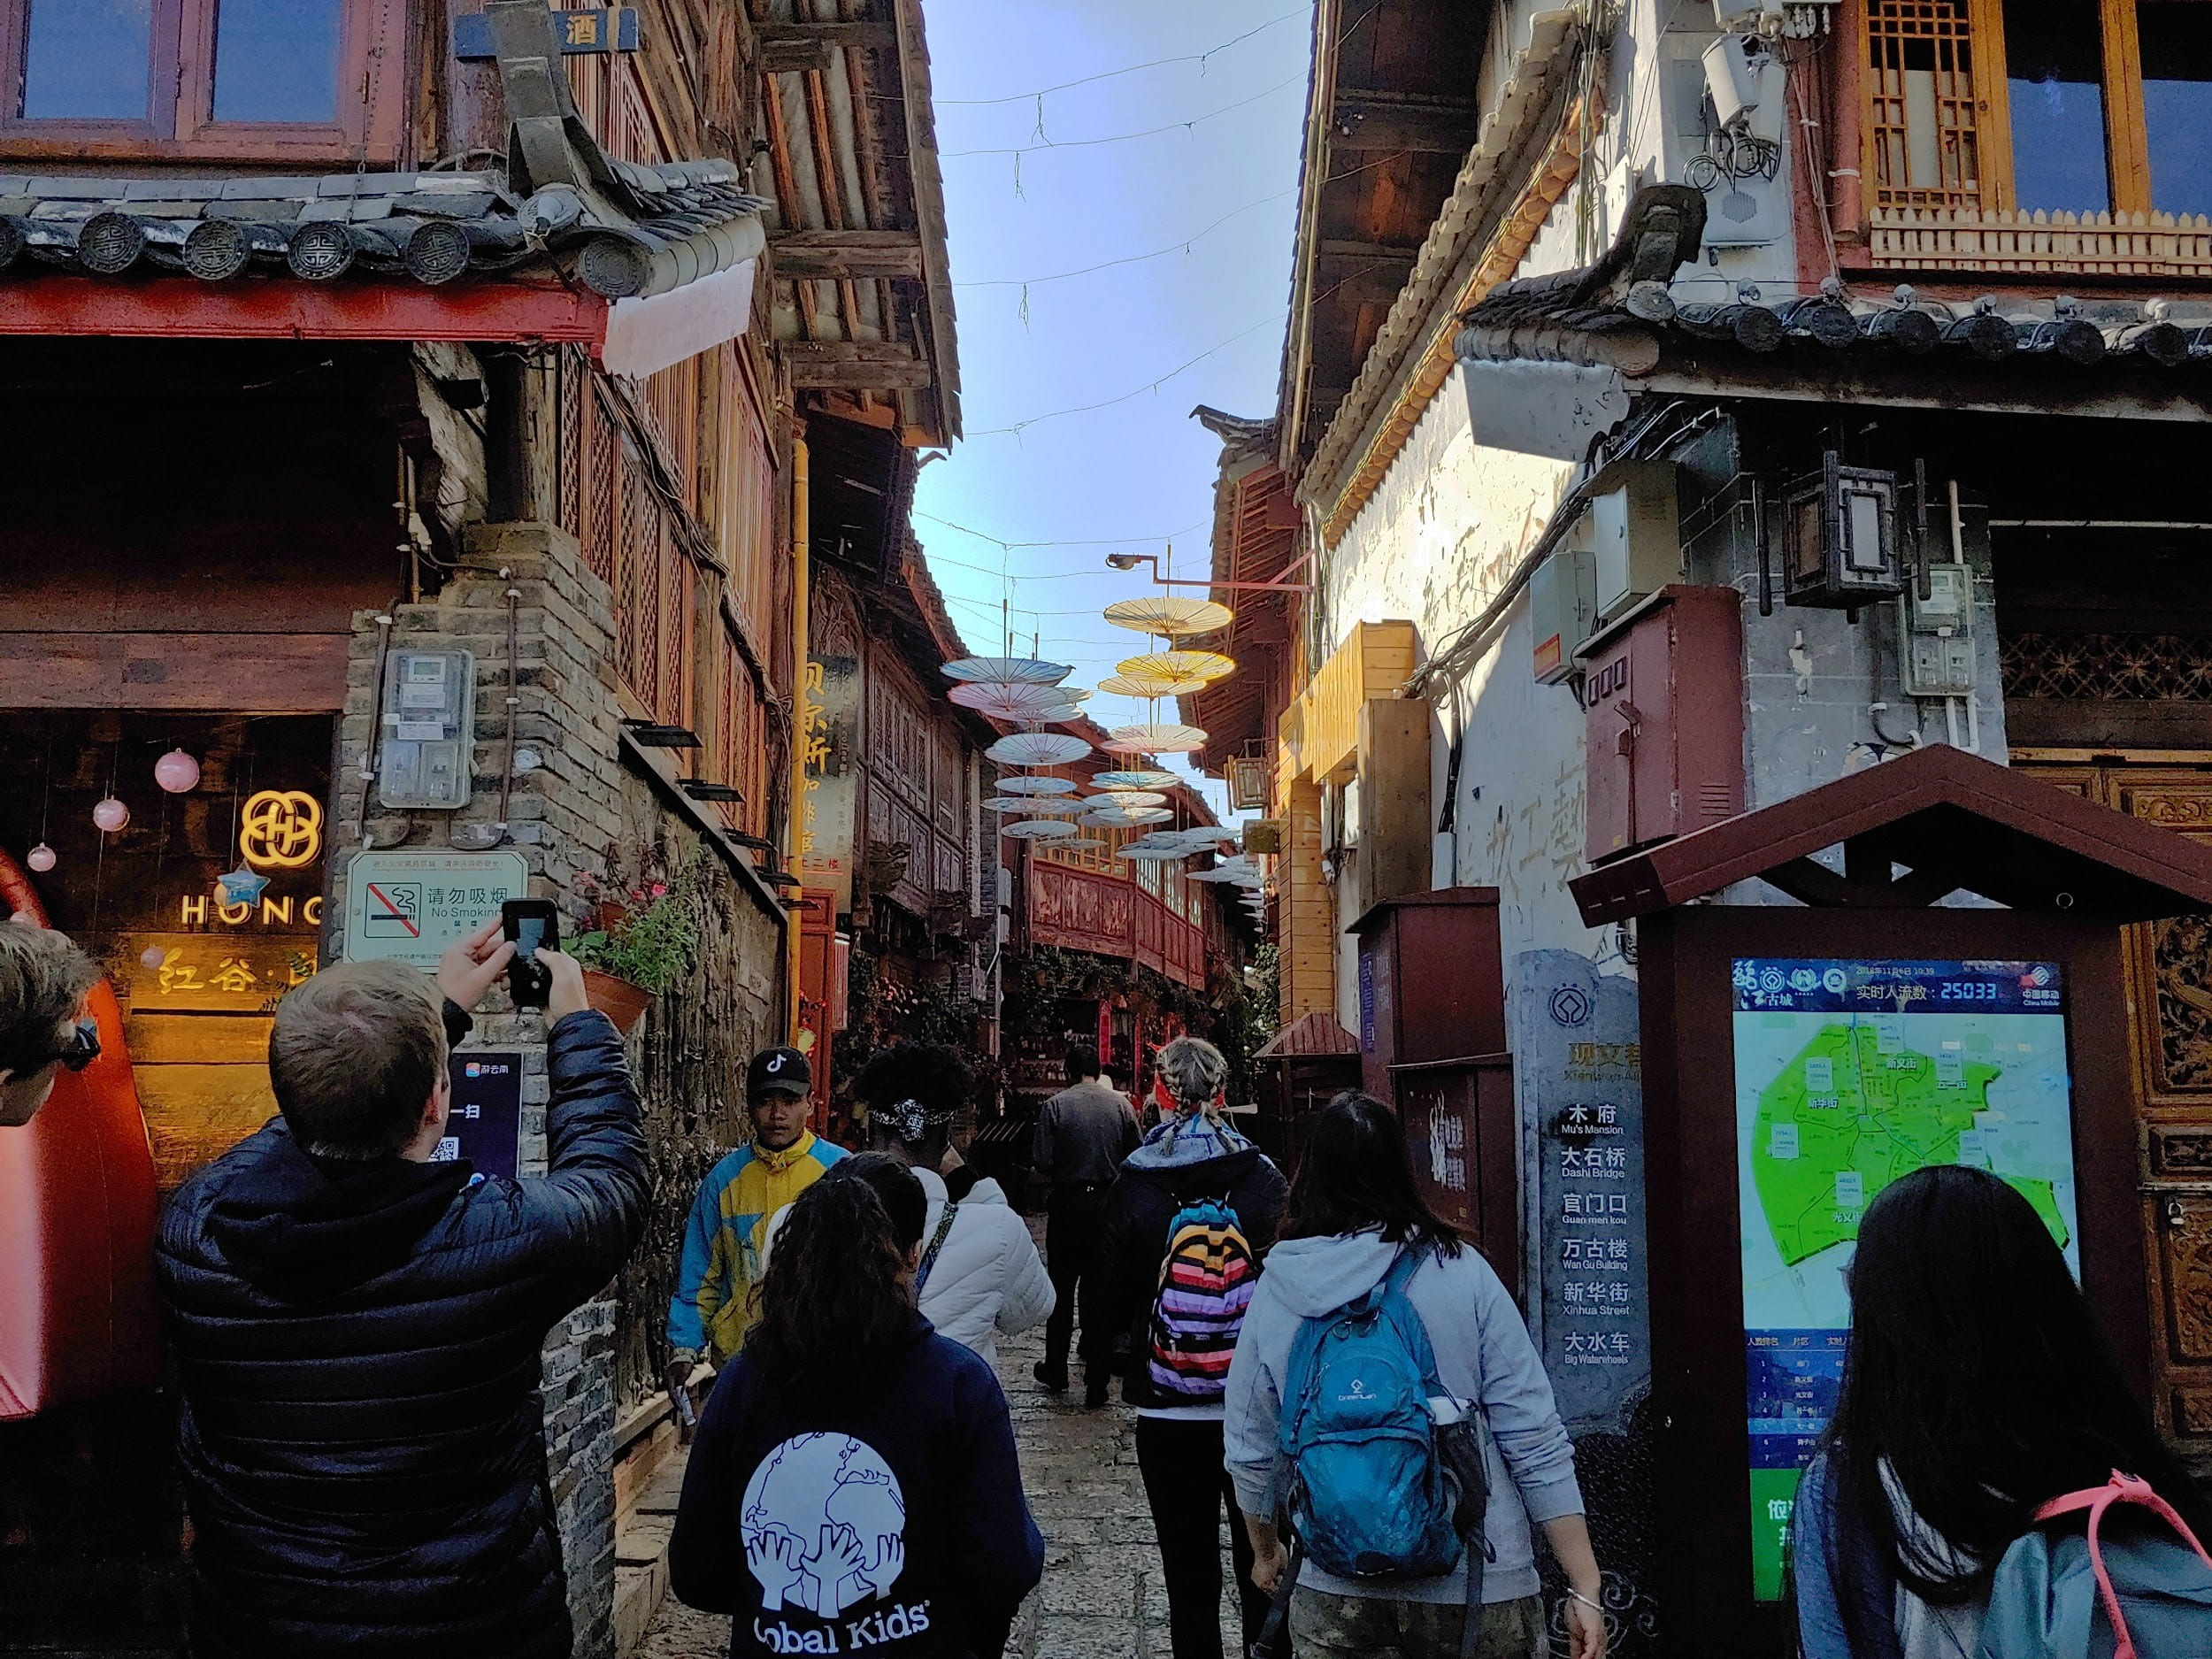 Lijiang Town in Yunnan Province, China